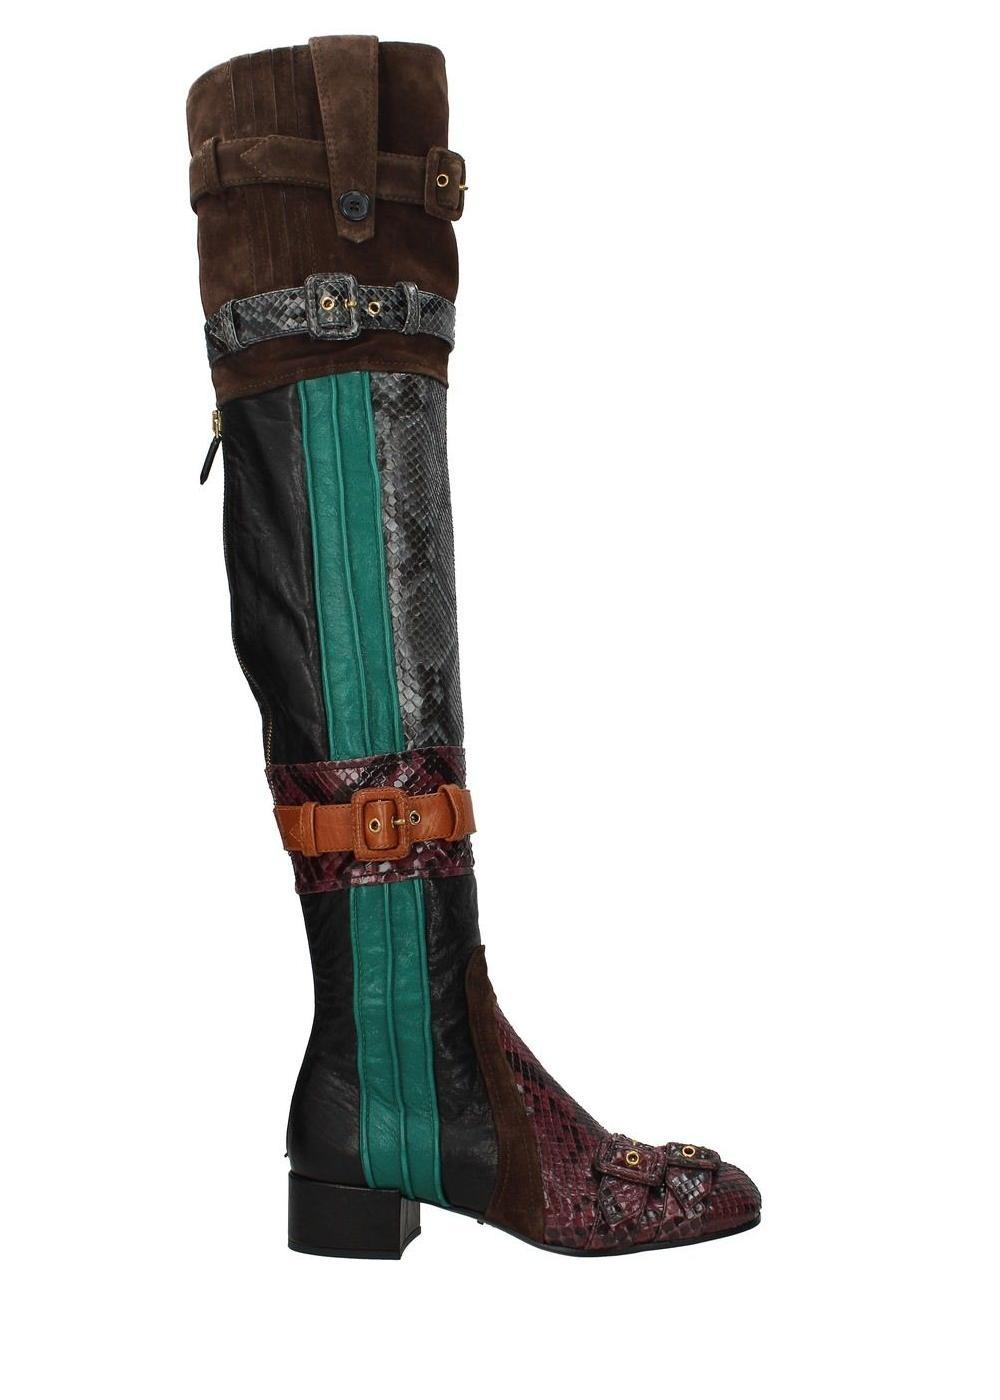 b767d1432957 Prada Multicolor Leather Python Boots Booties Size EU 37 37 37 (Approx. US